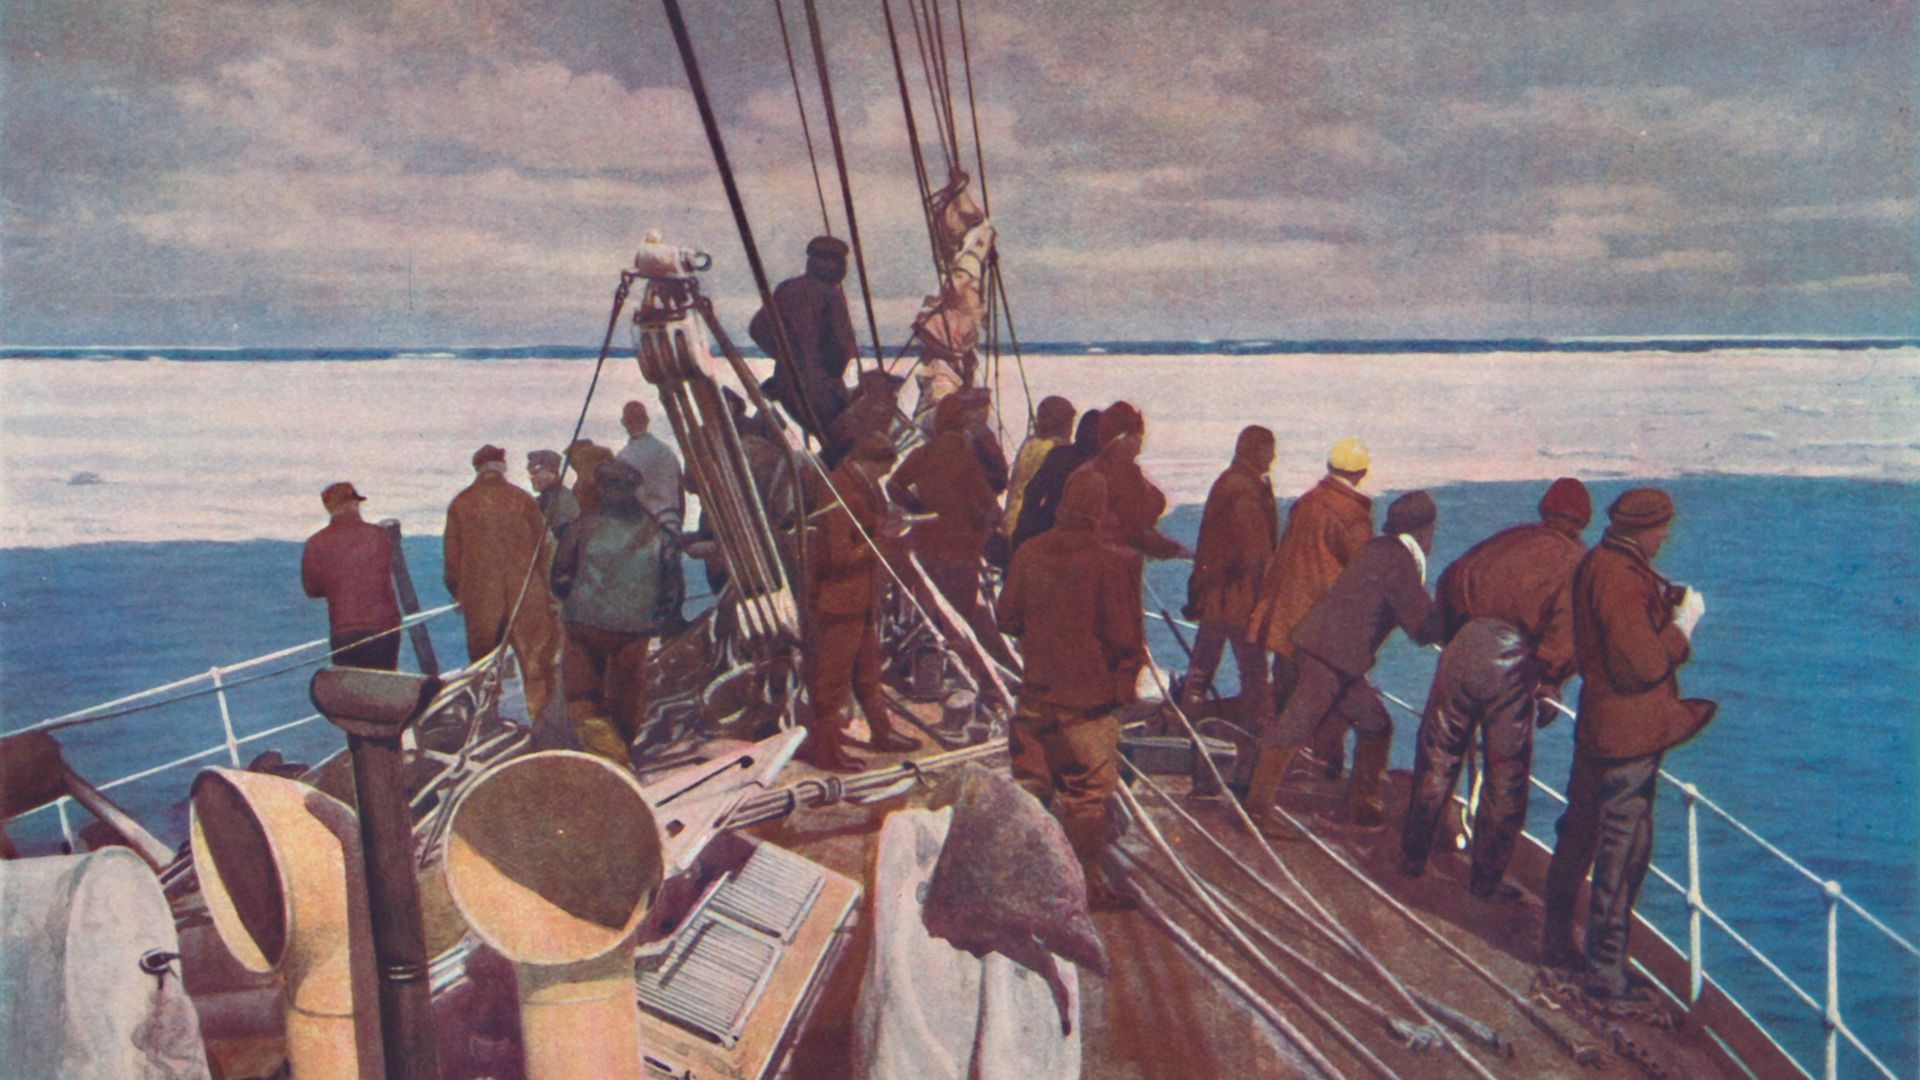 Prelude to Adventure. Captain Scott's ship, the Terra Nova, entering the pack ice of the South Polar regions', circa 1910. - Credit: Getty Images